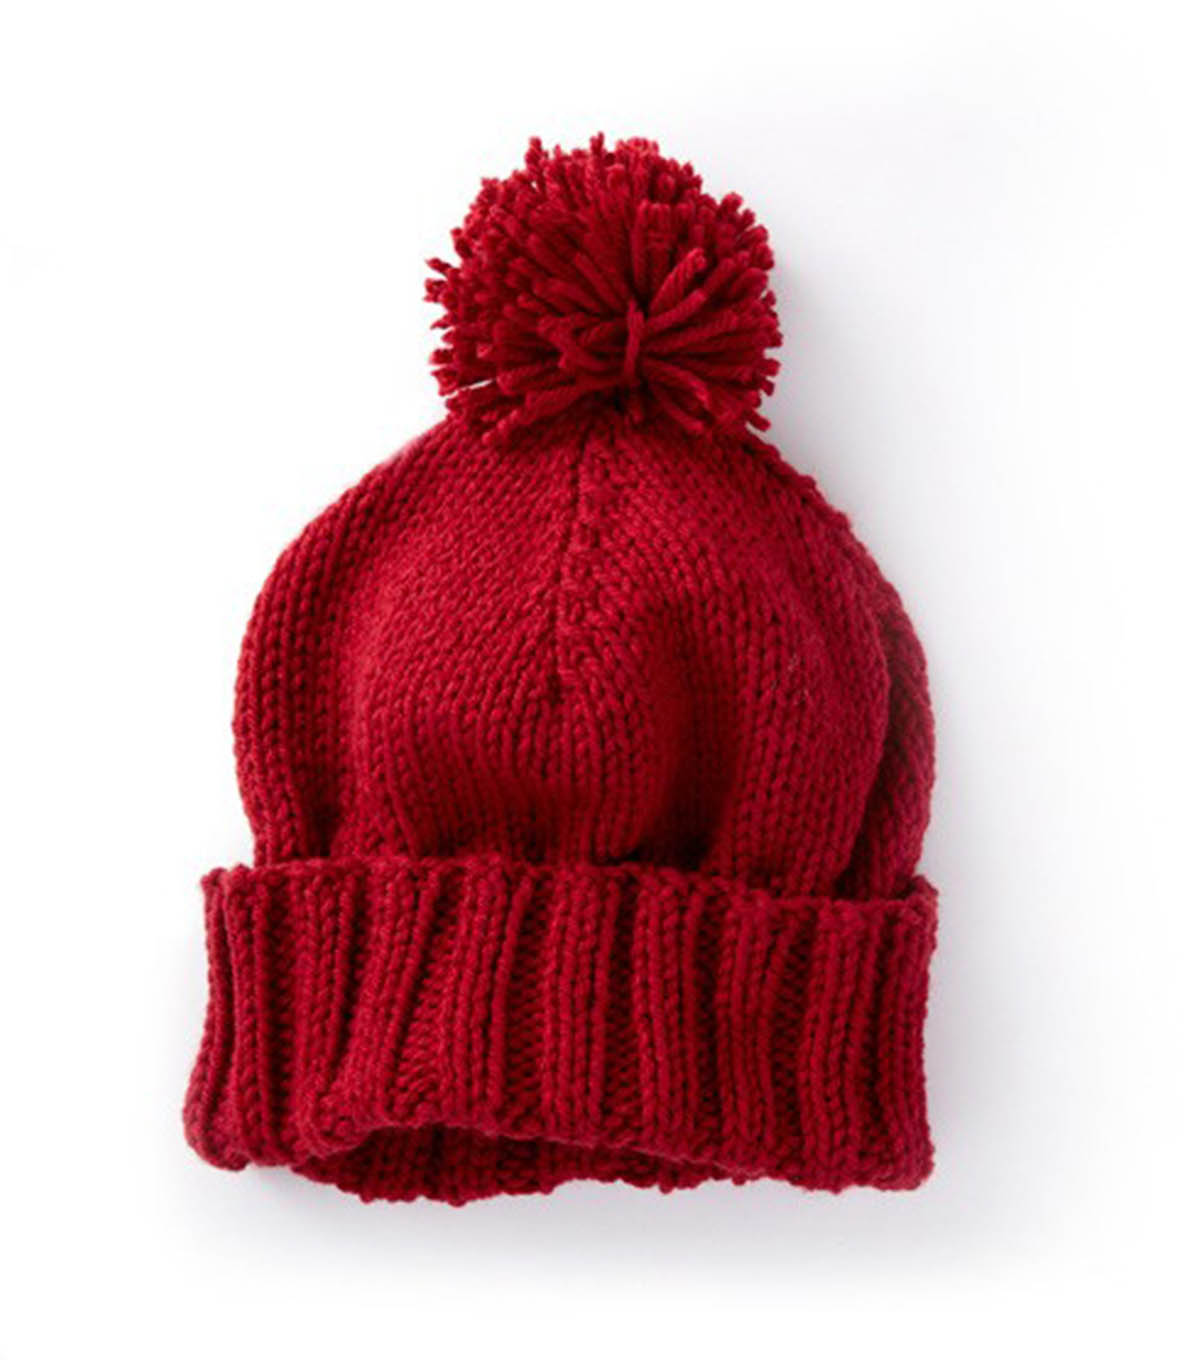 How To Make A BASIC FAMILY KNIT HAT   JOANN